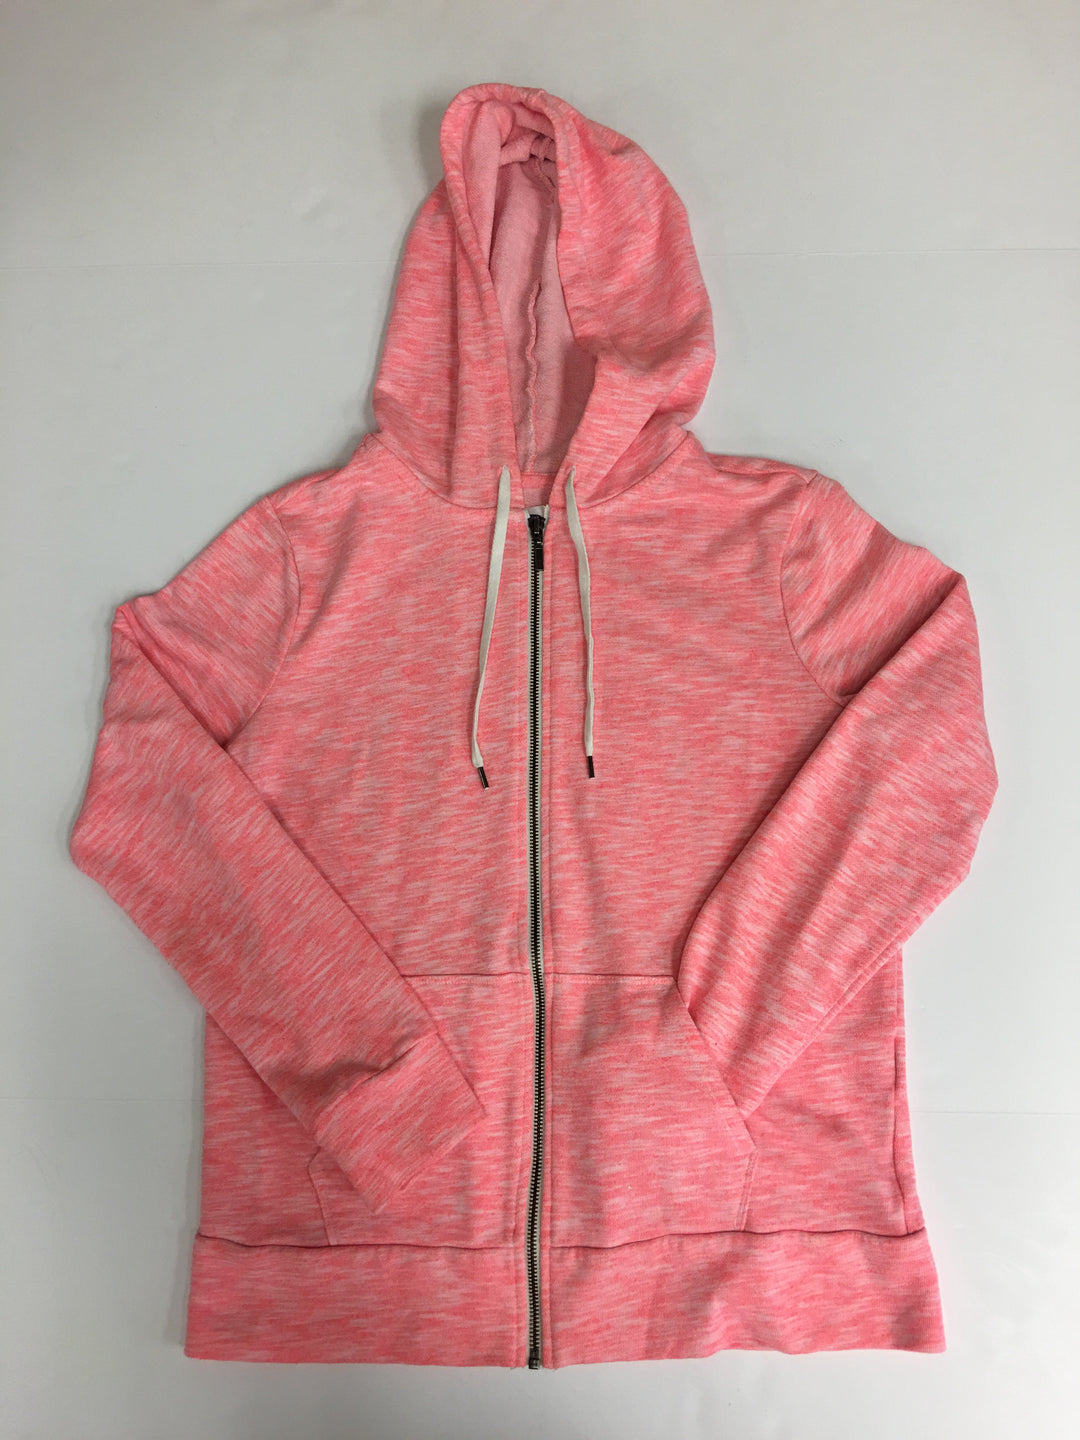 Primary Photo - BRAND: OLD NAVY O <BR>STYLE: ATHLETIC JACKET <BR>COLOR: PINK <BR>SIZE: L <BR>SKU: 198-19888-32157